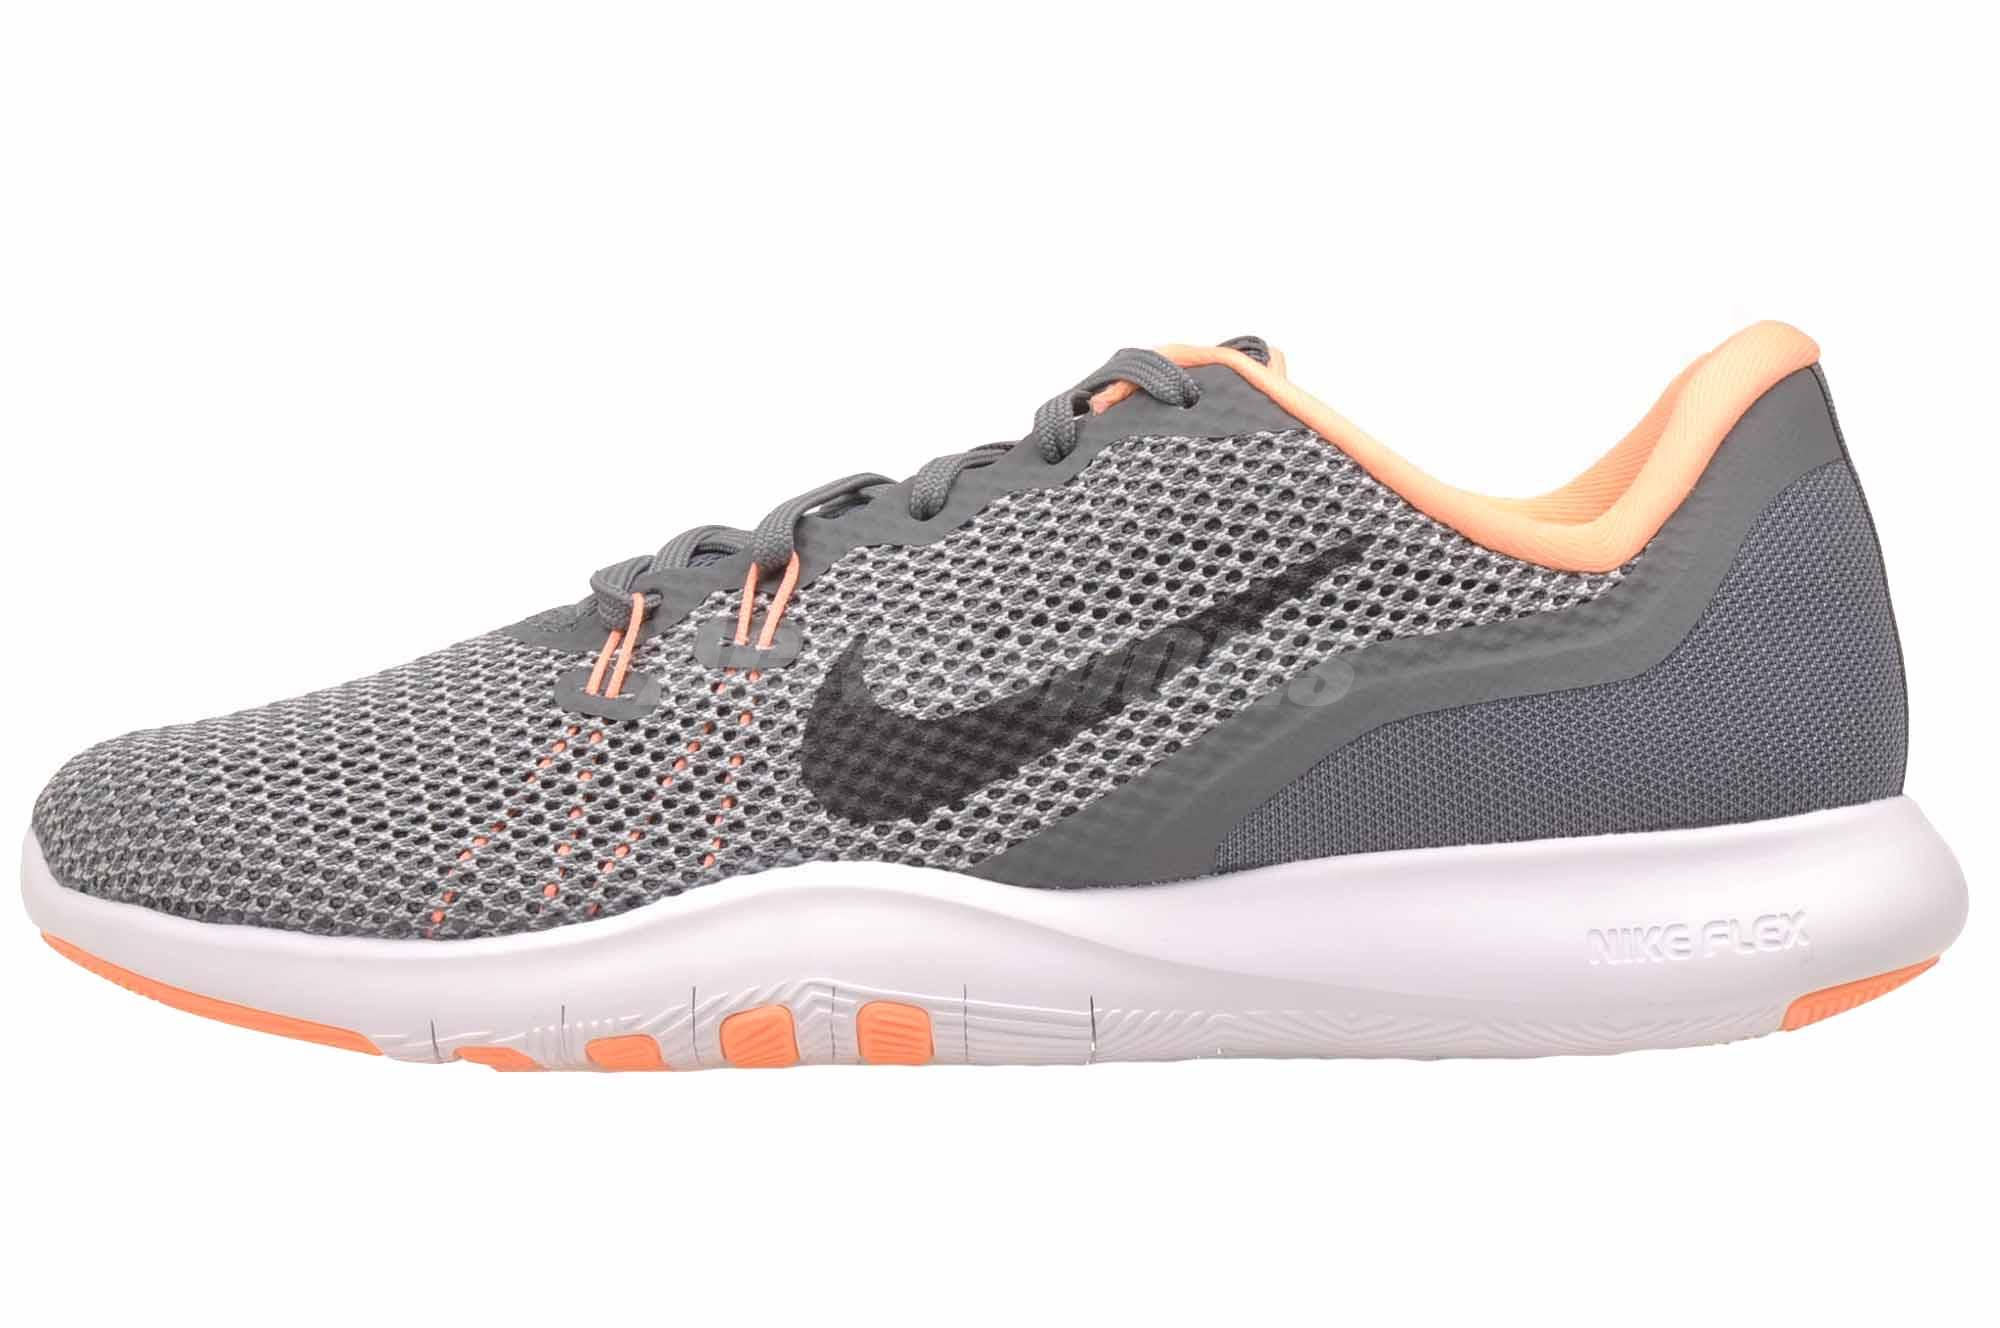 promo code 8ac51 b3b79 Details about Nike Wmns Flex Trainer 7 Cross Training Womens Shoes Grey  Sunset 898479-002